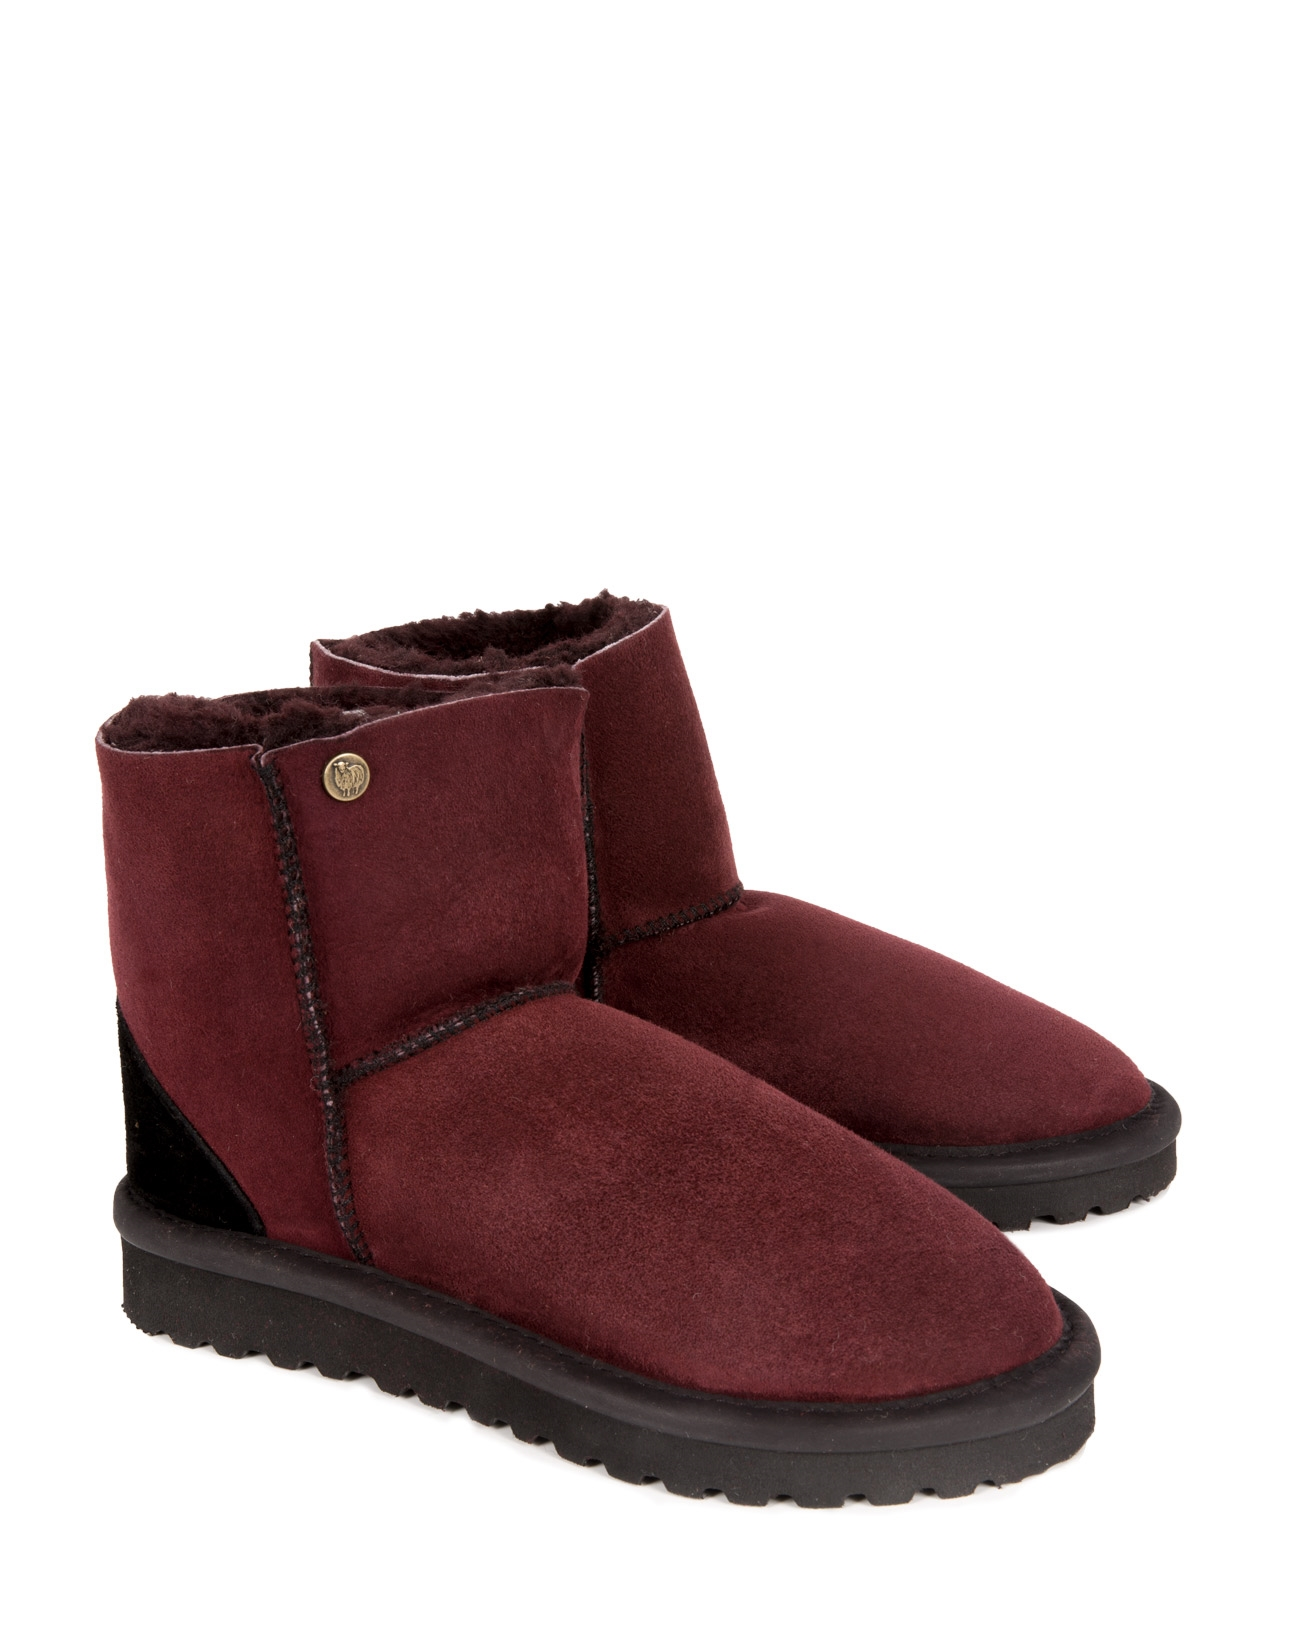 6585_coloured shortie boots_claret_pair-aw18.jpg